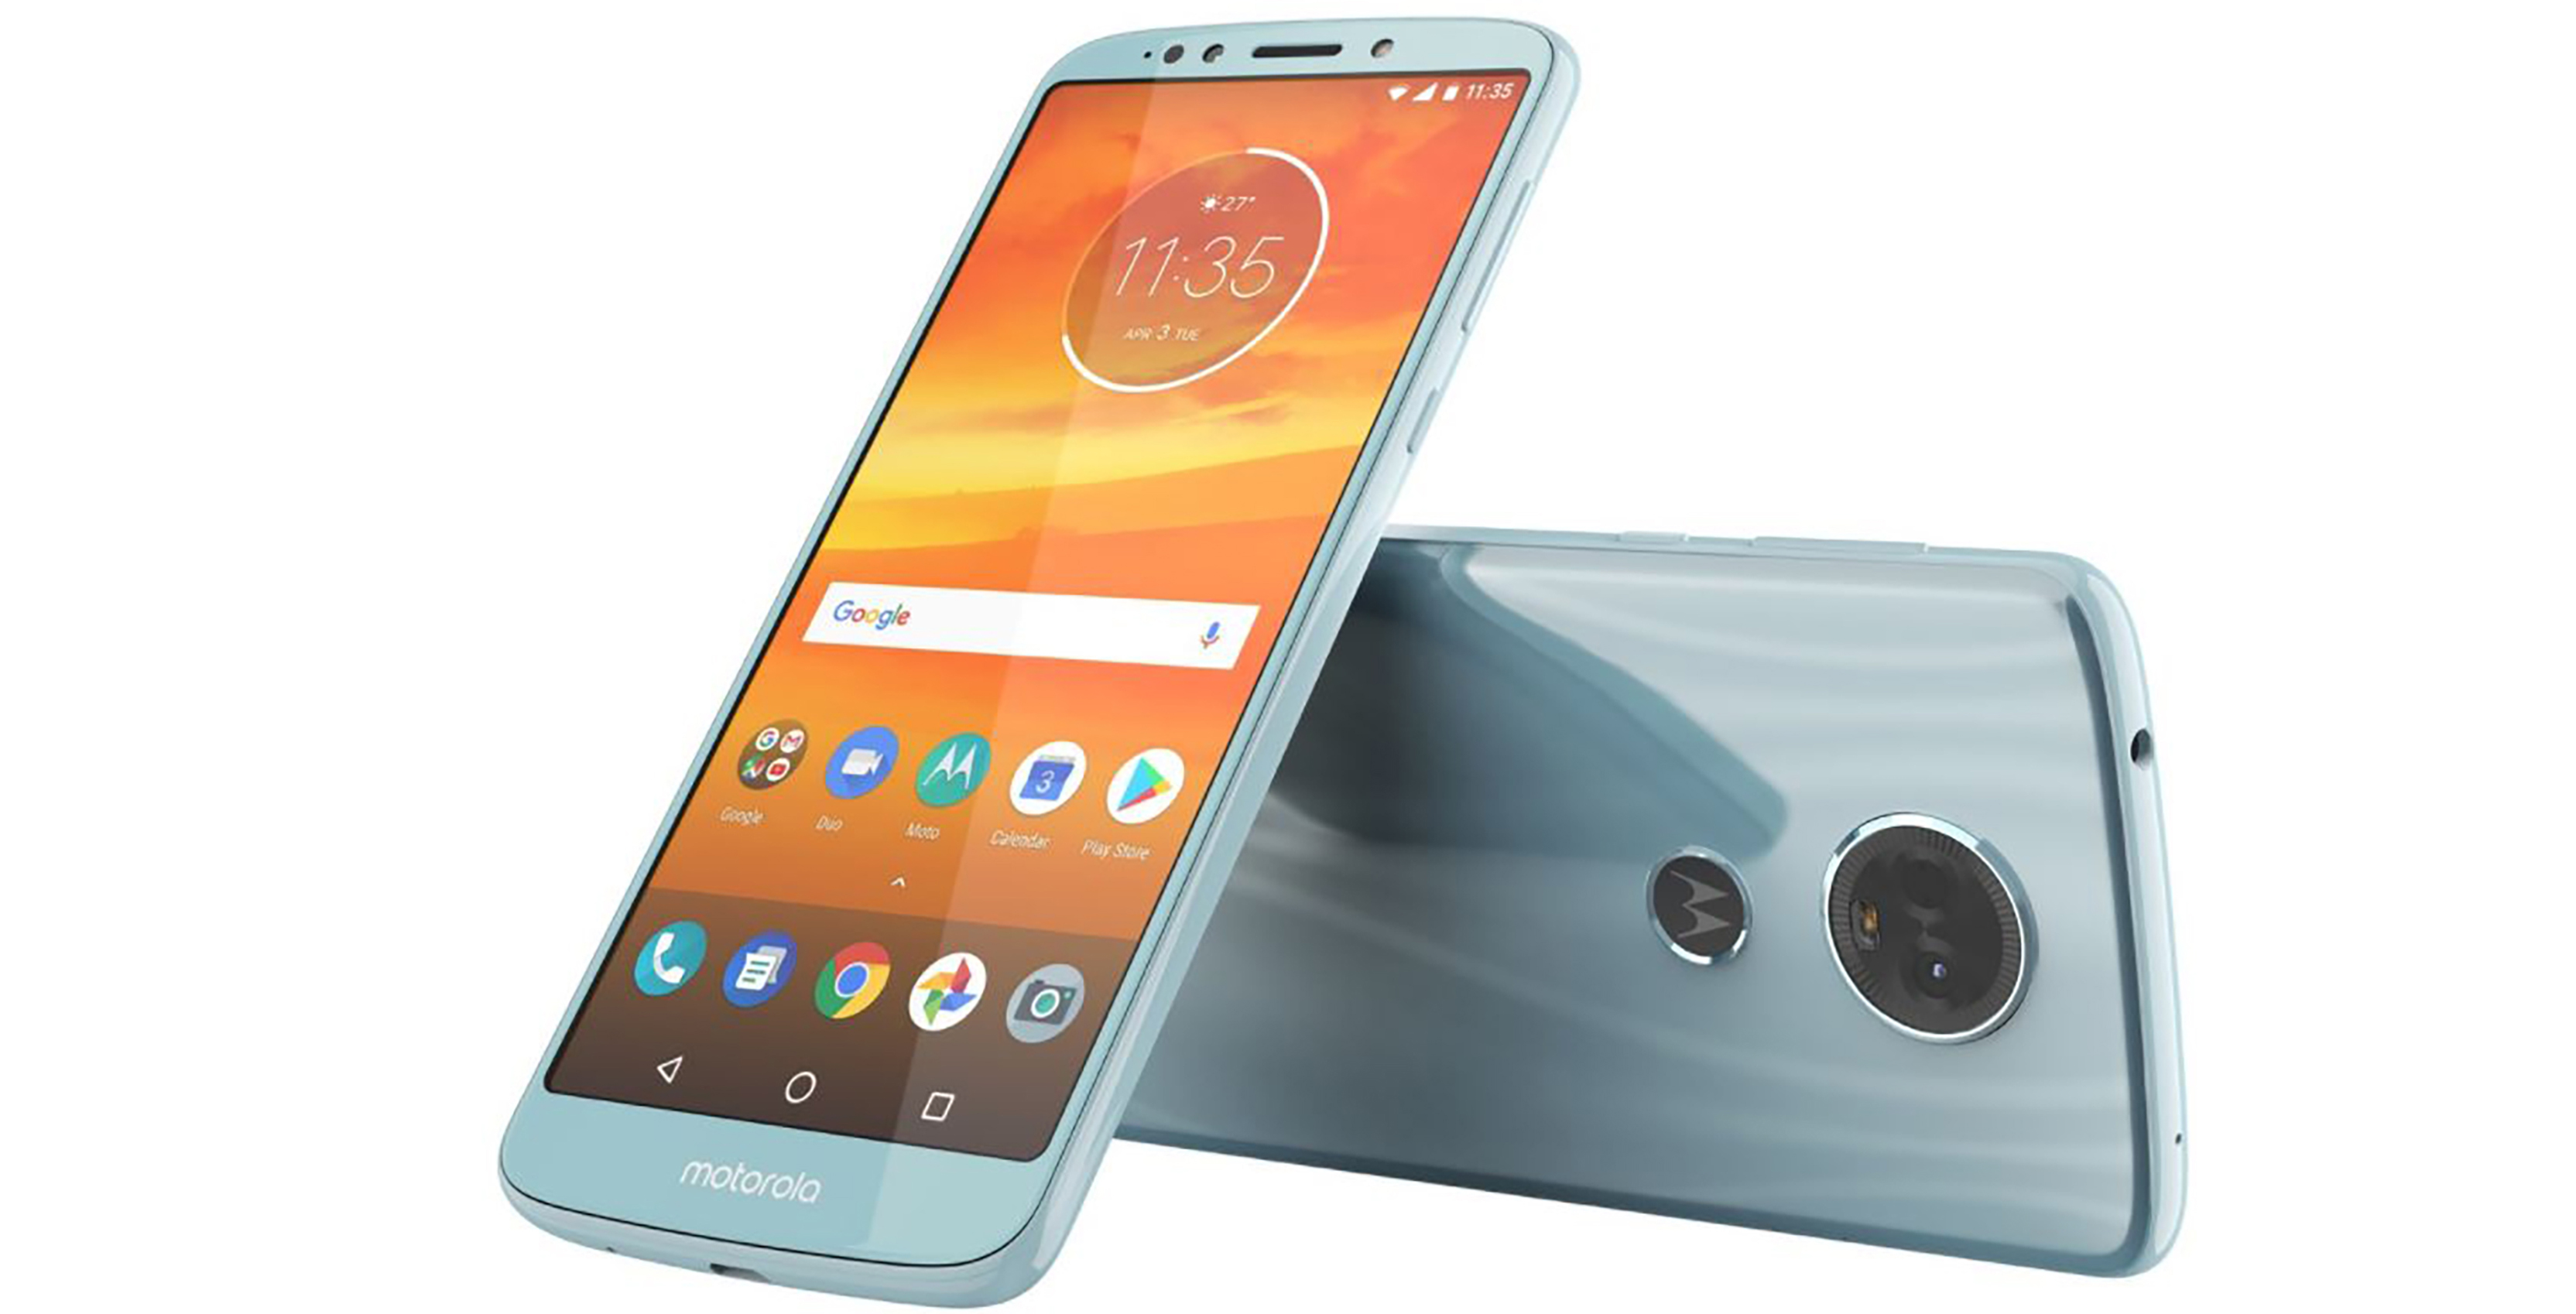 Motorola Moto E5 Plus render leaked, to come with 18:9 display